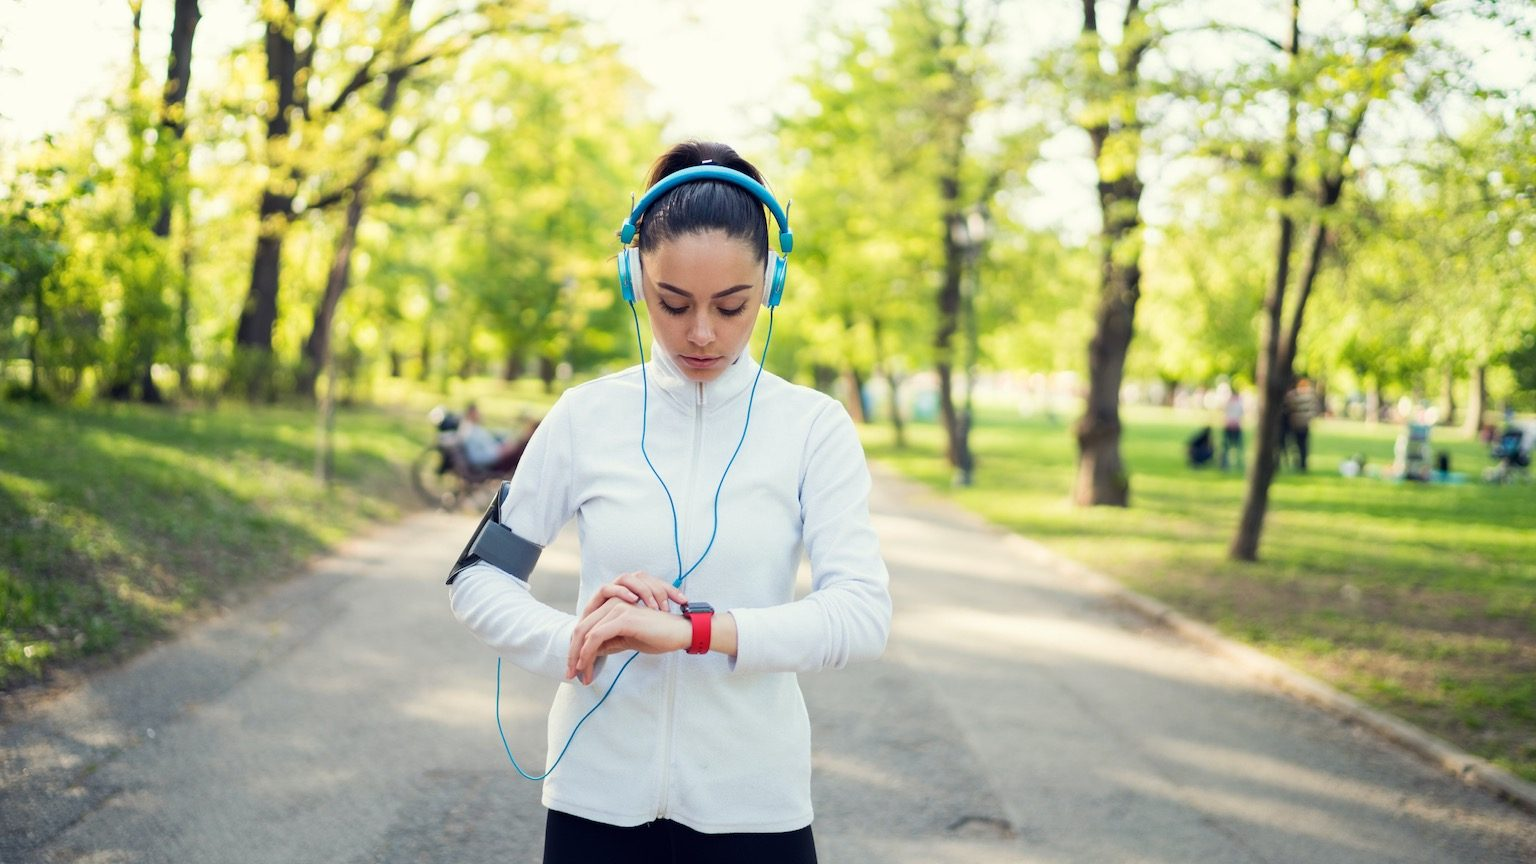 Attractive woman checking fitness tracker after sports training